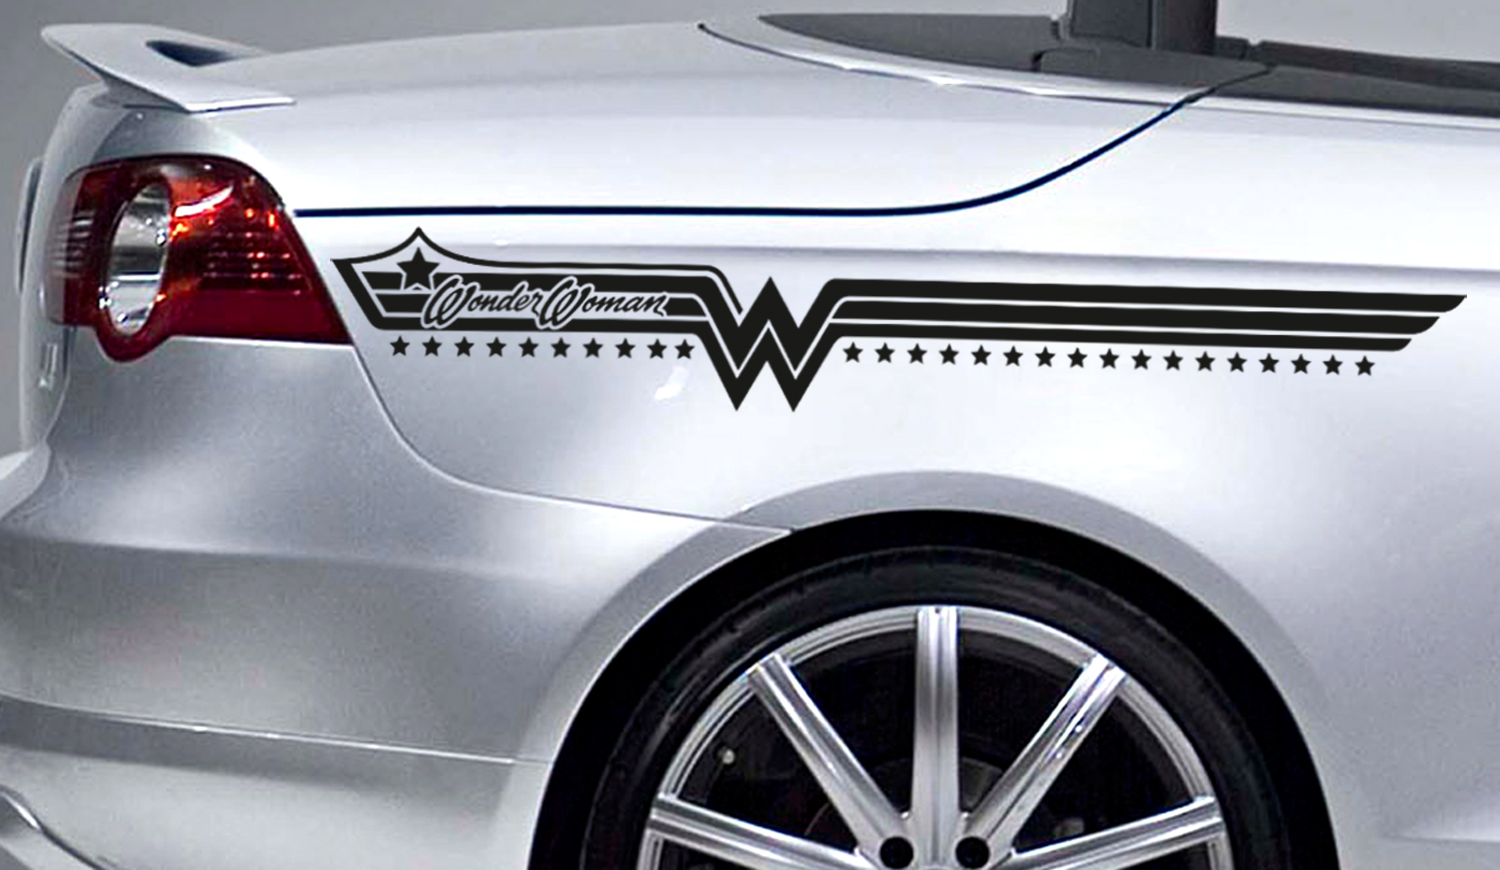 2x Diana Prince Stripes Superhero Justice Comics Girl Car Vinyl Sticker Decal